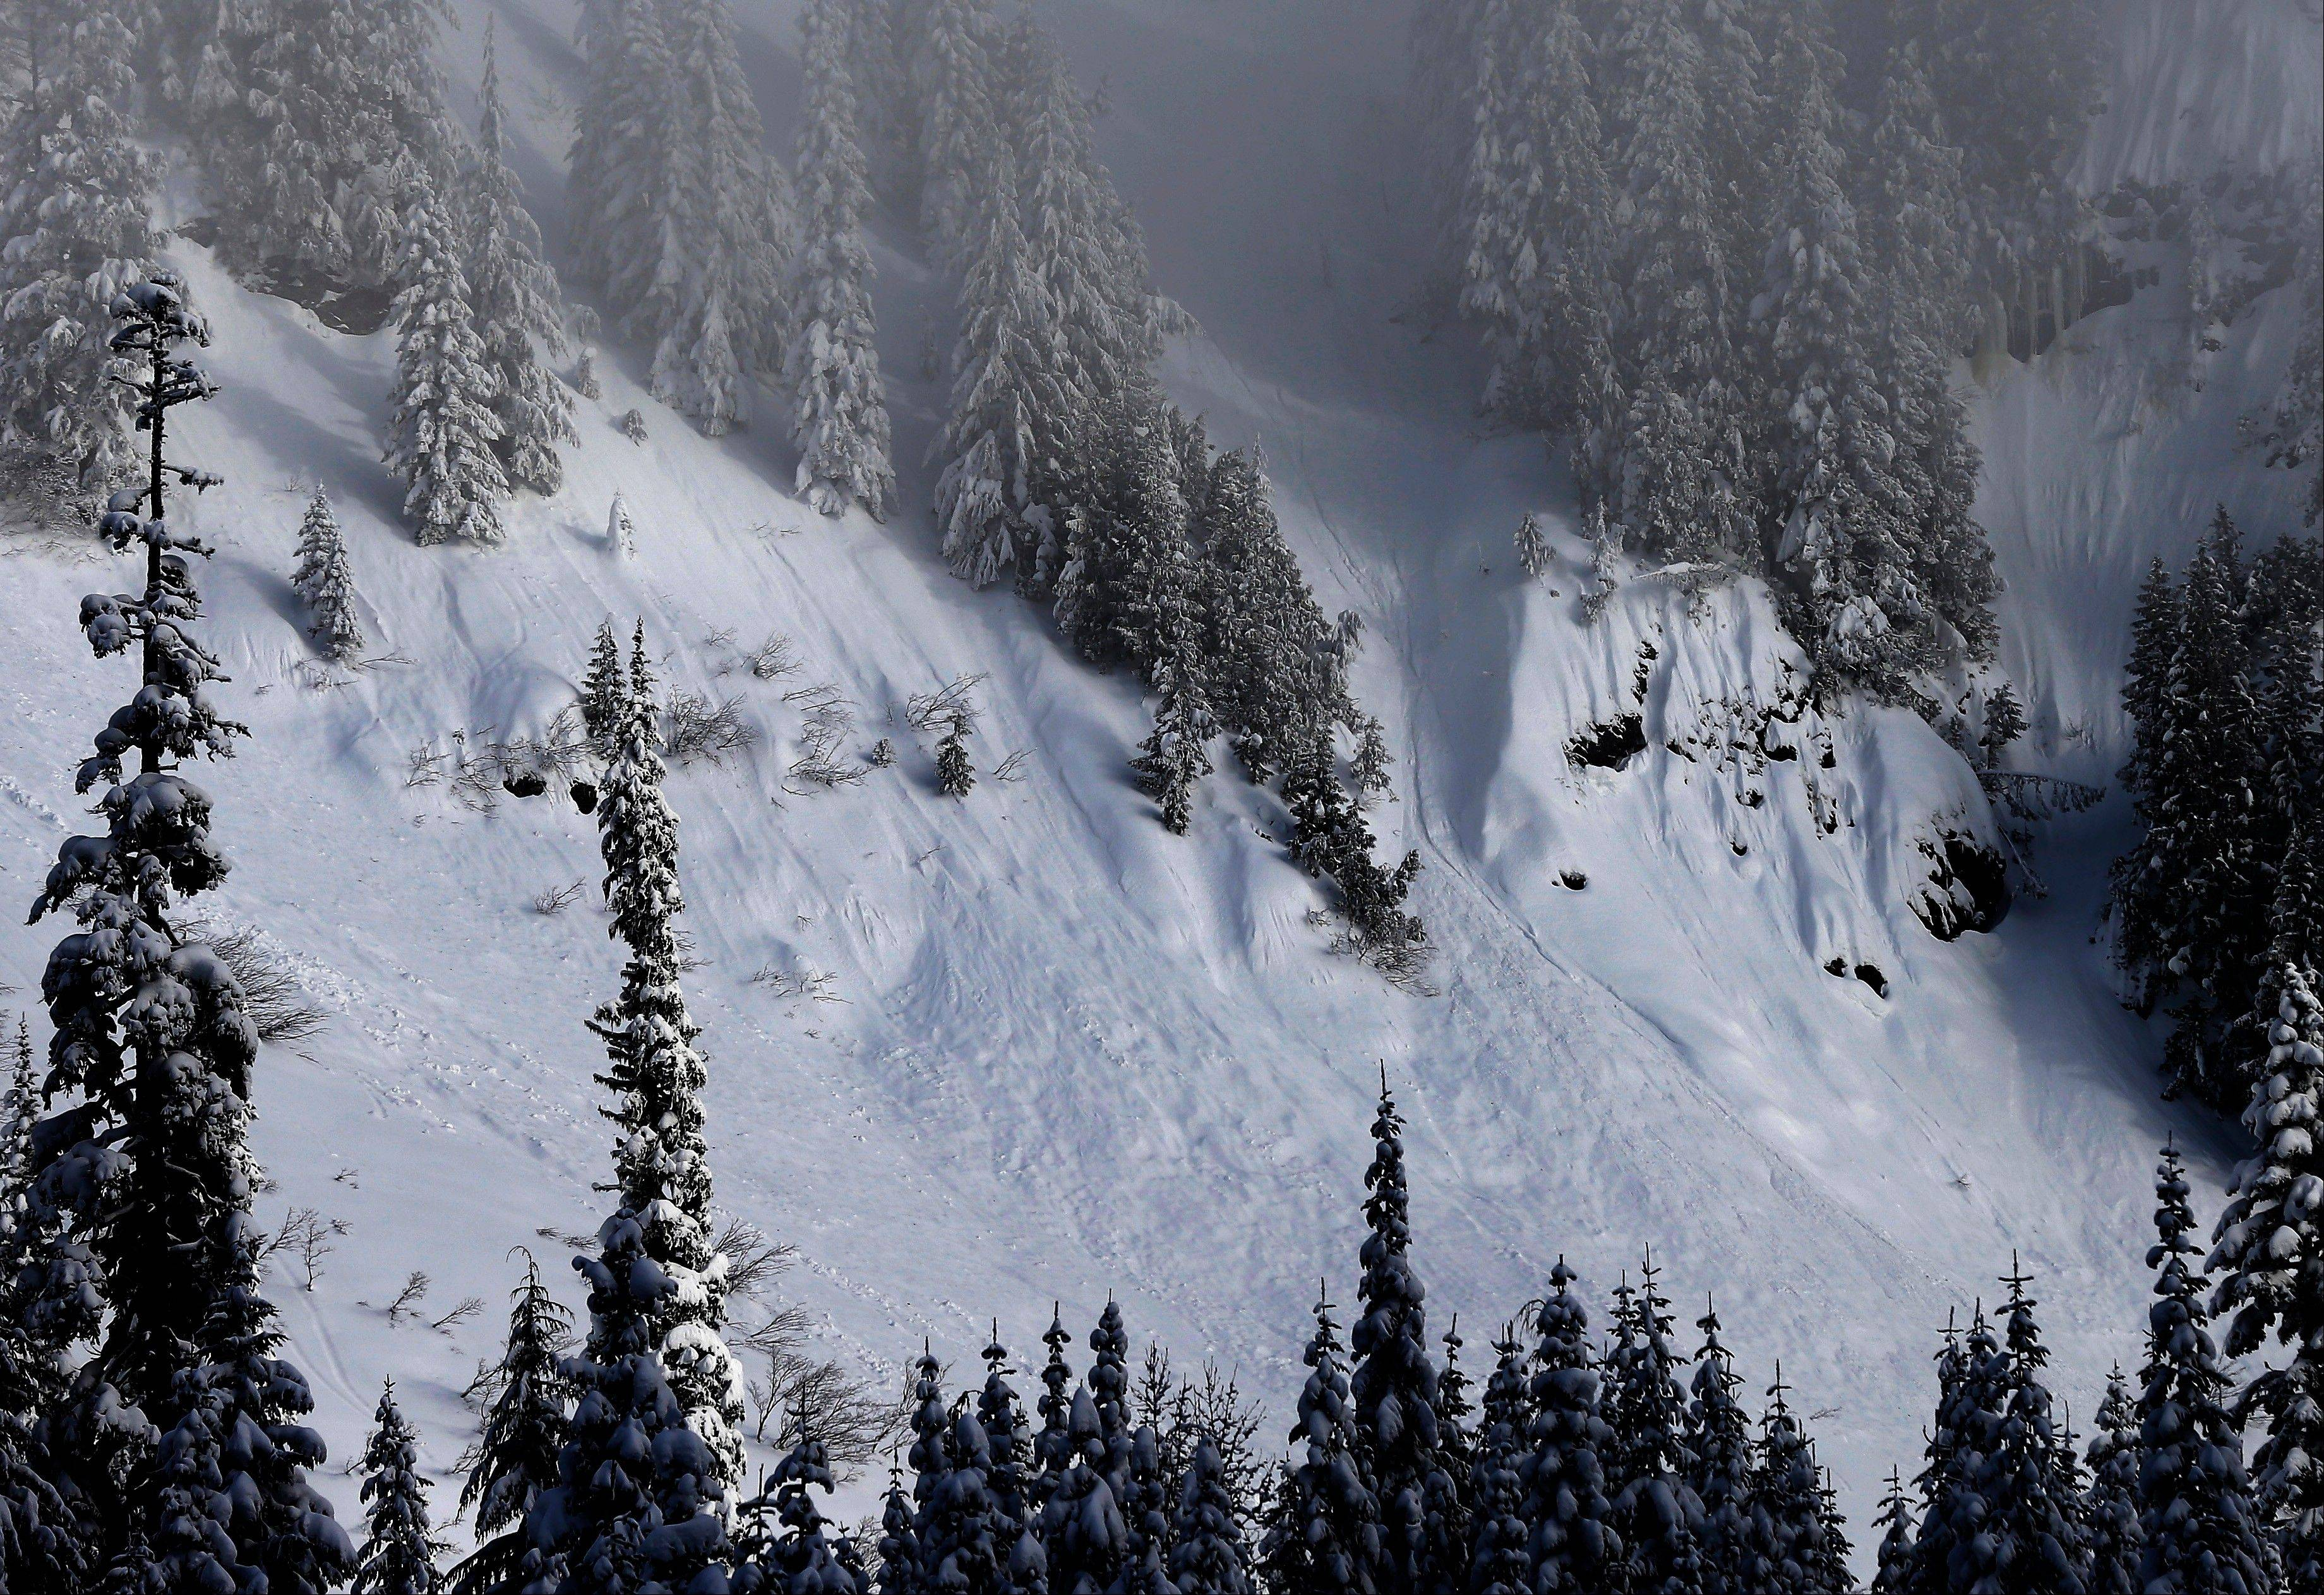 Snow slides down a mountain near a ski area at Snoqualmie Pass in Washington state. Snow training courses now incorporate a focus on human factors such as how to make better decisions, manage group dynamics and speak up should danger arise.